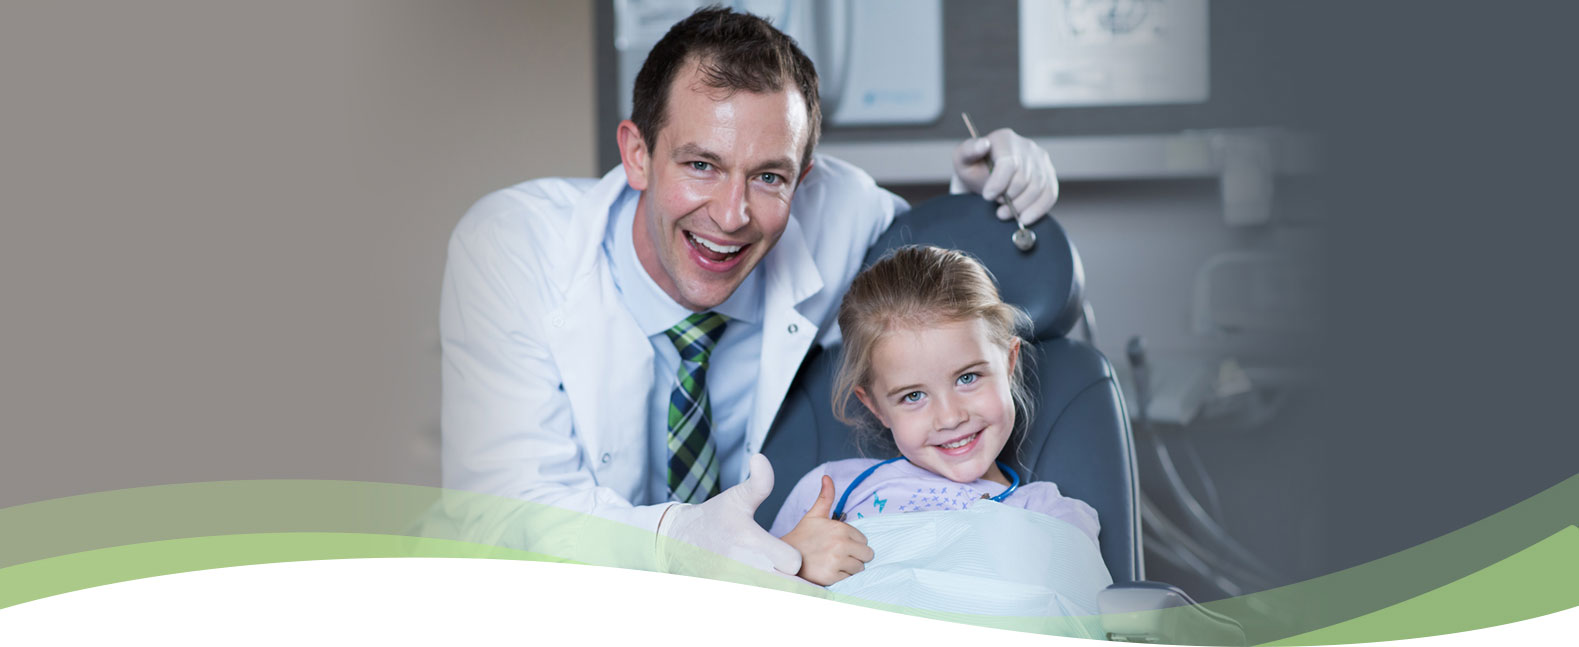 dentist with young patient